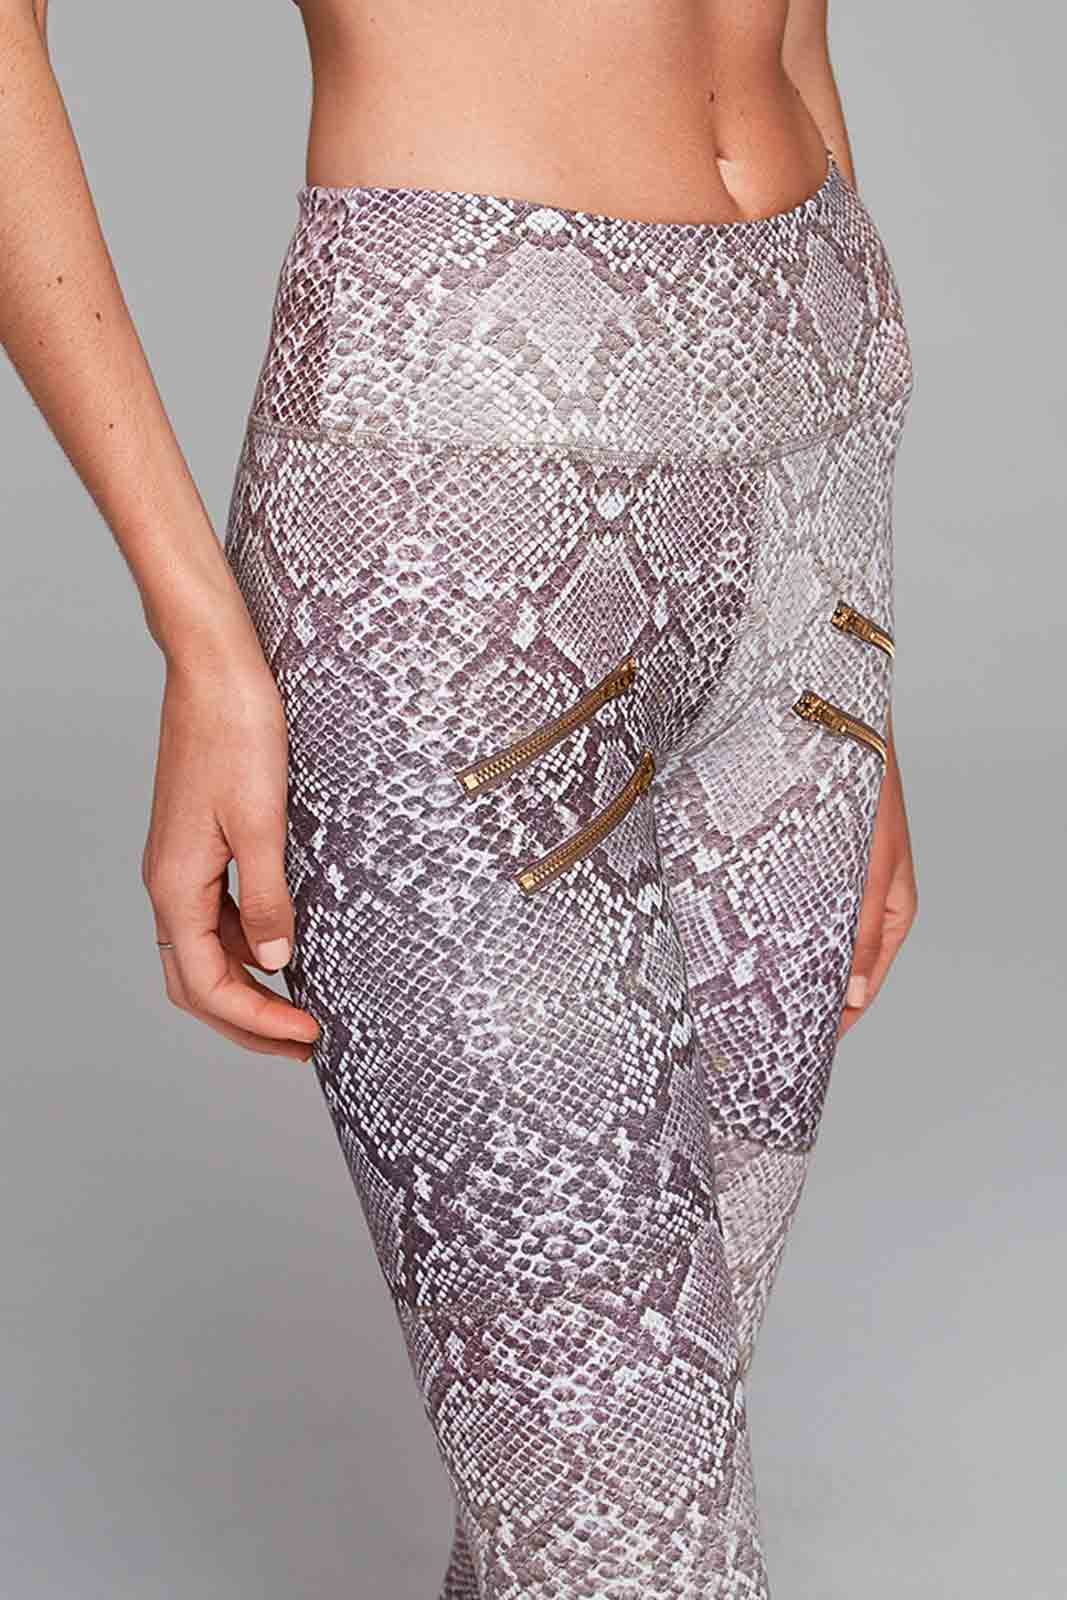 Varley Palms Tight - Taupe Snake image 2 - The Sports Edit